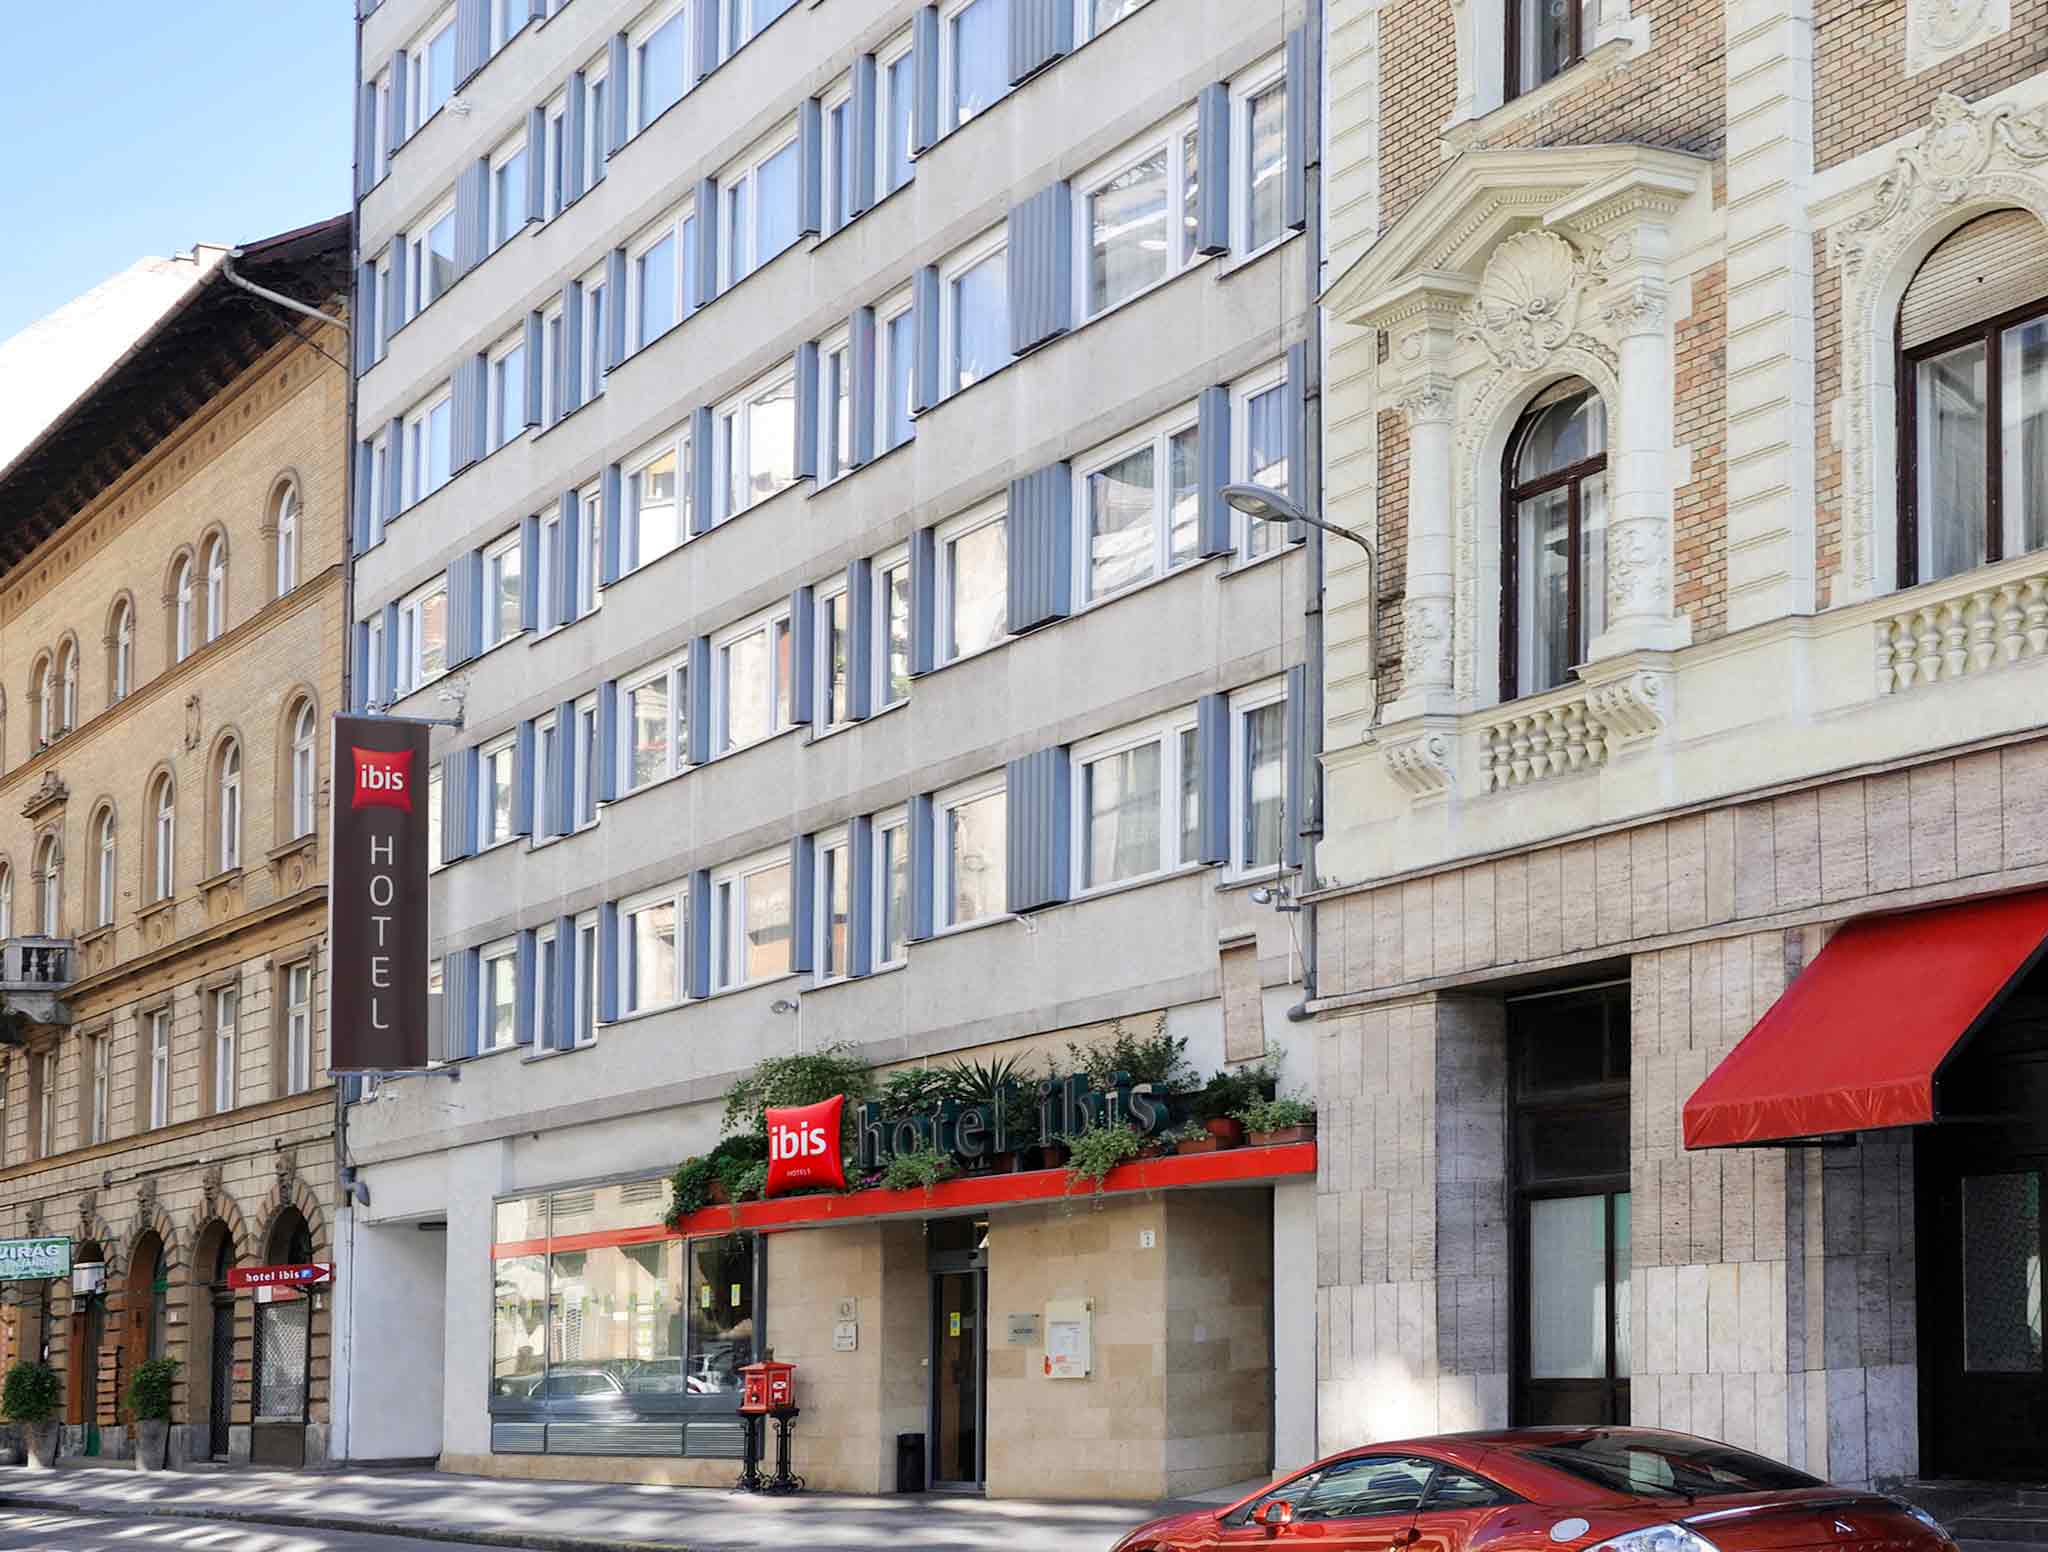 Ibis Budapest City Comfortable Modern Hotel In Budapest